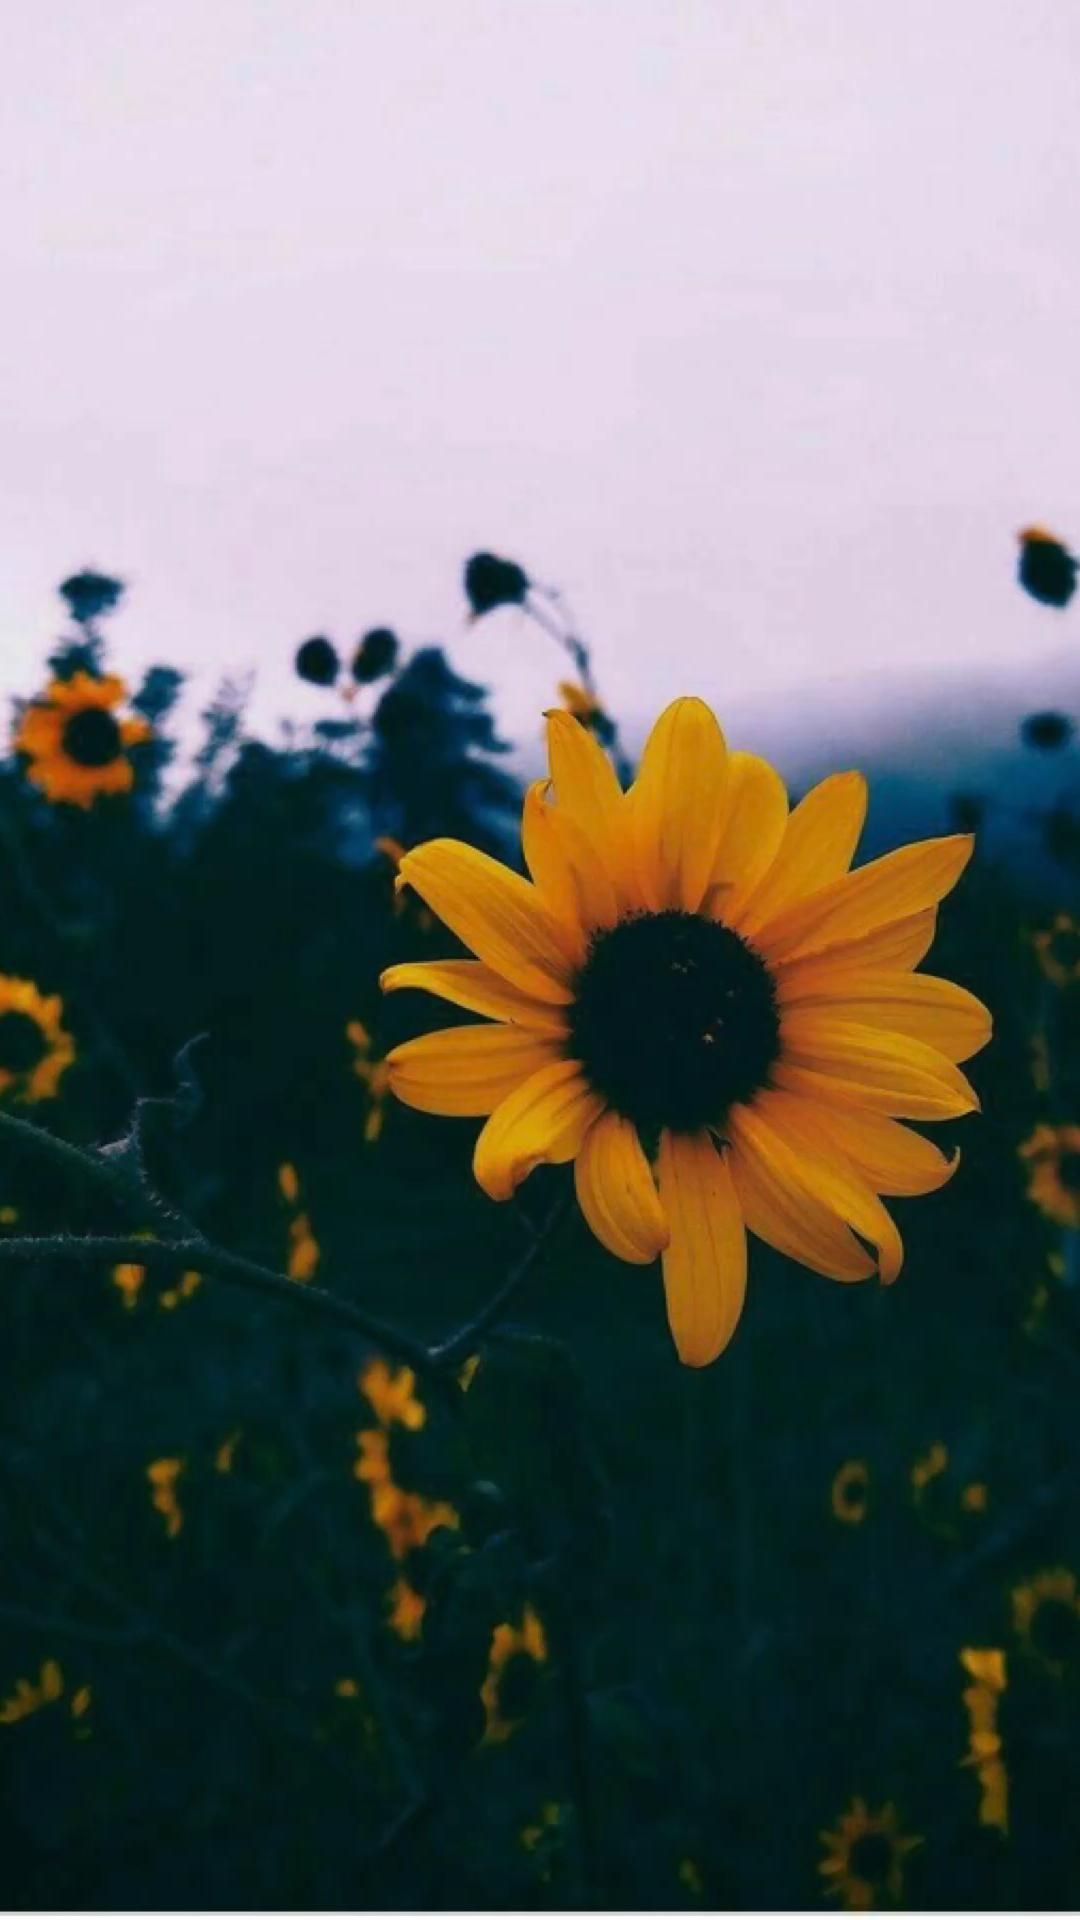 aesthetic sunflower pictures